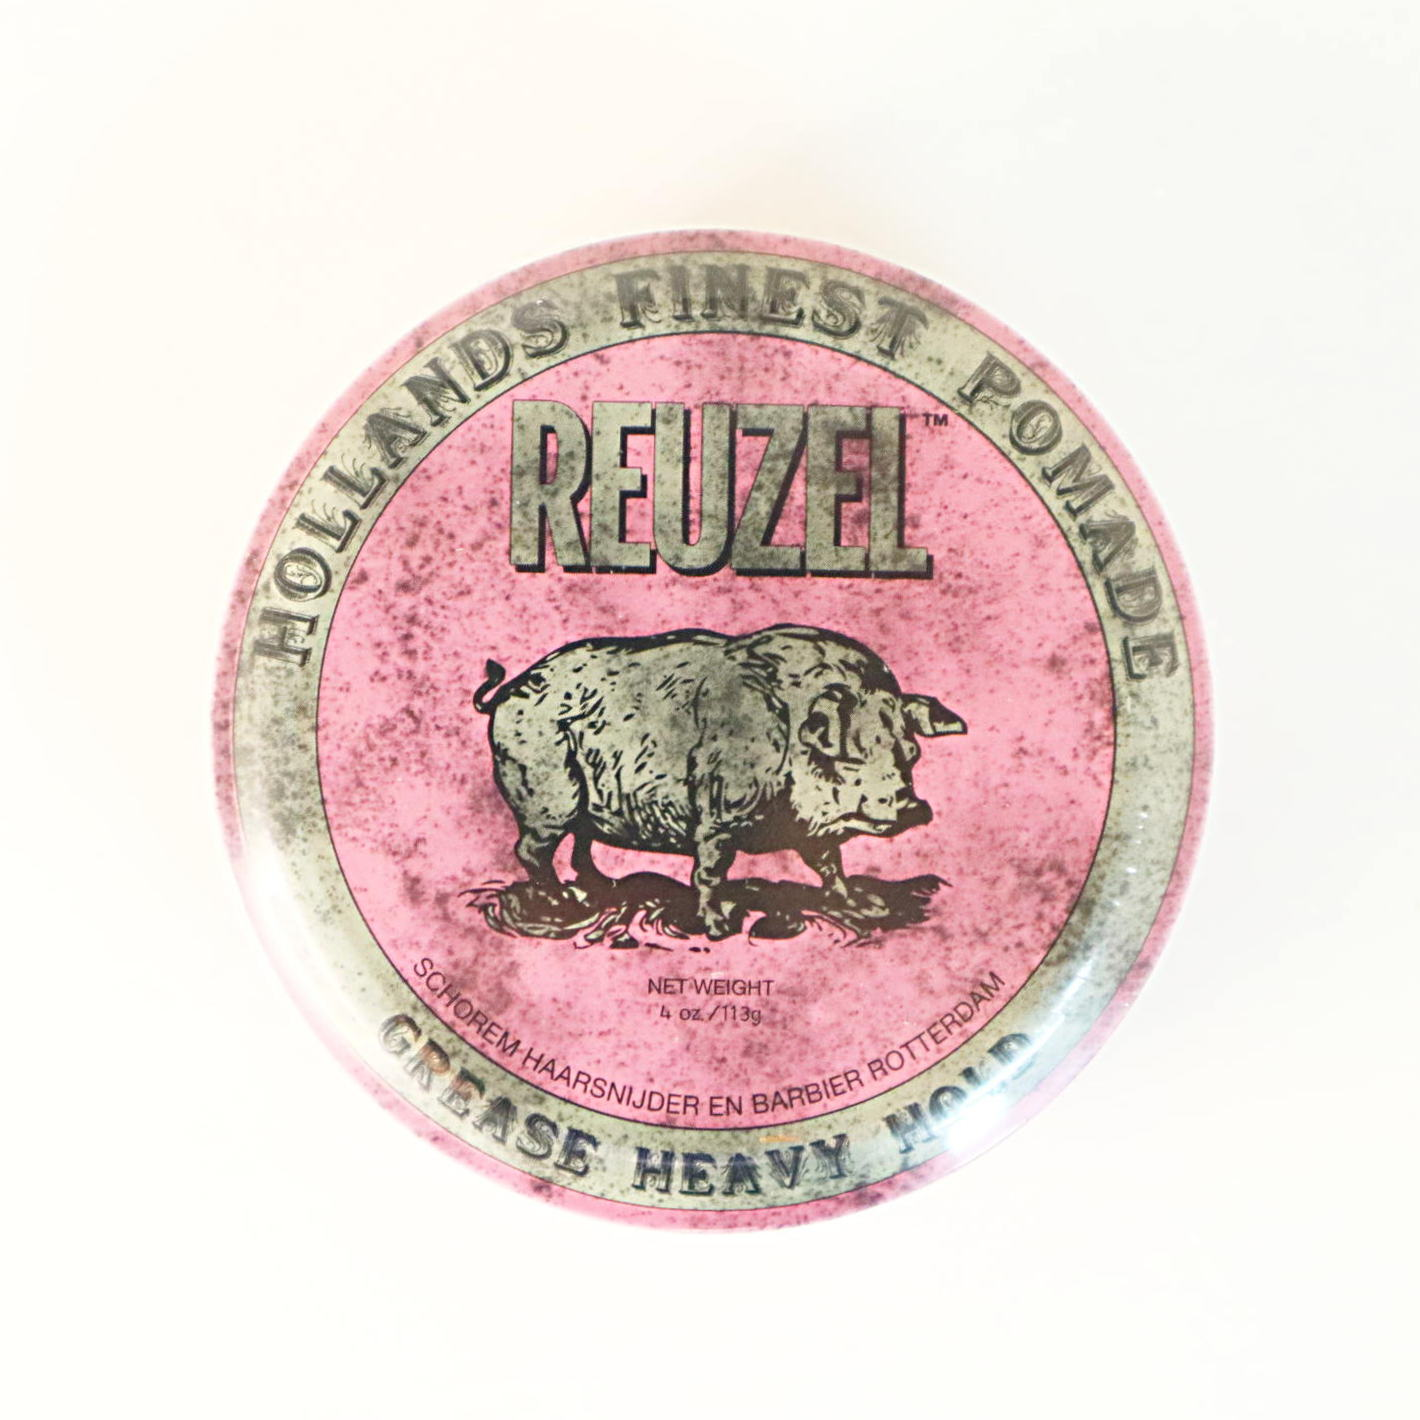 HEAVY HOLD GREASE/REUZEL_A(ポマード)